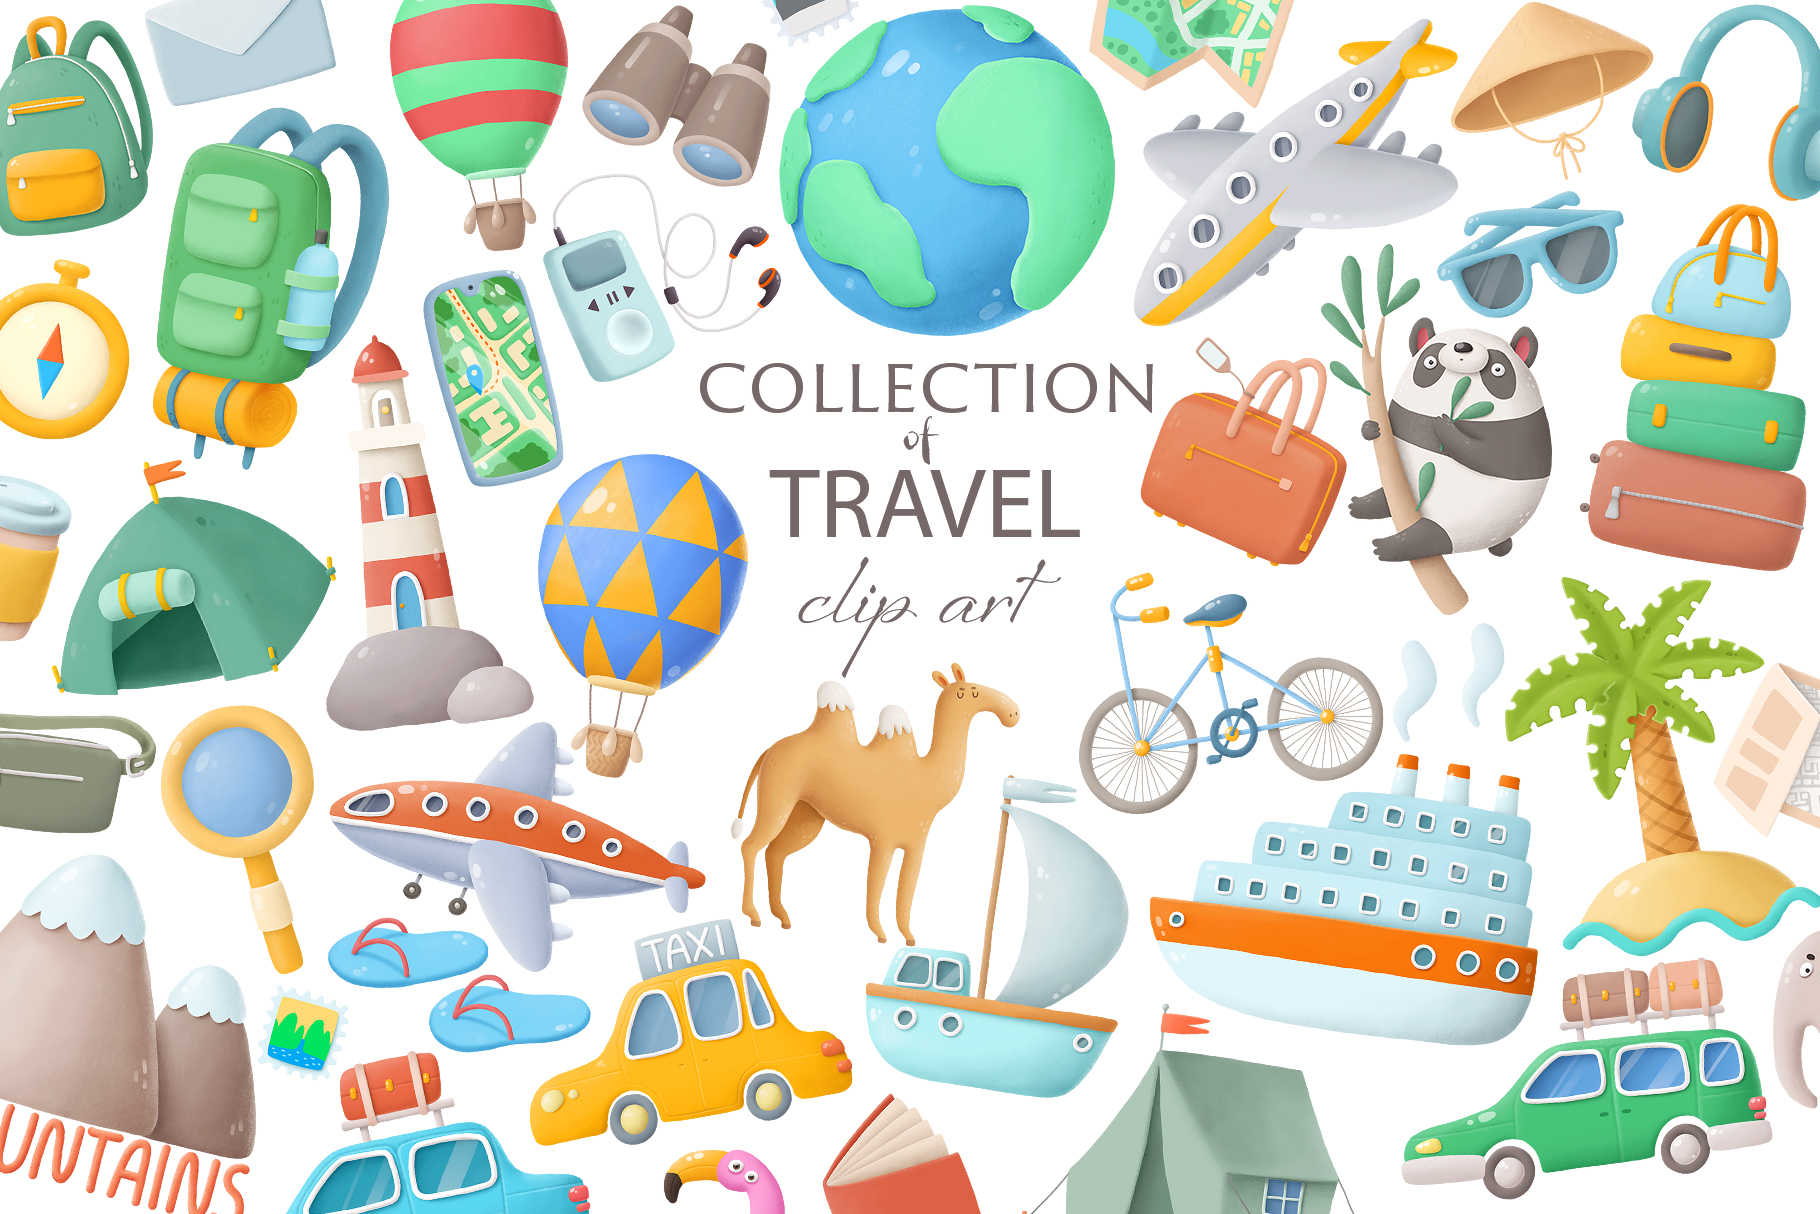 Travel clip art collection example image 1